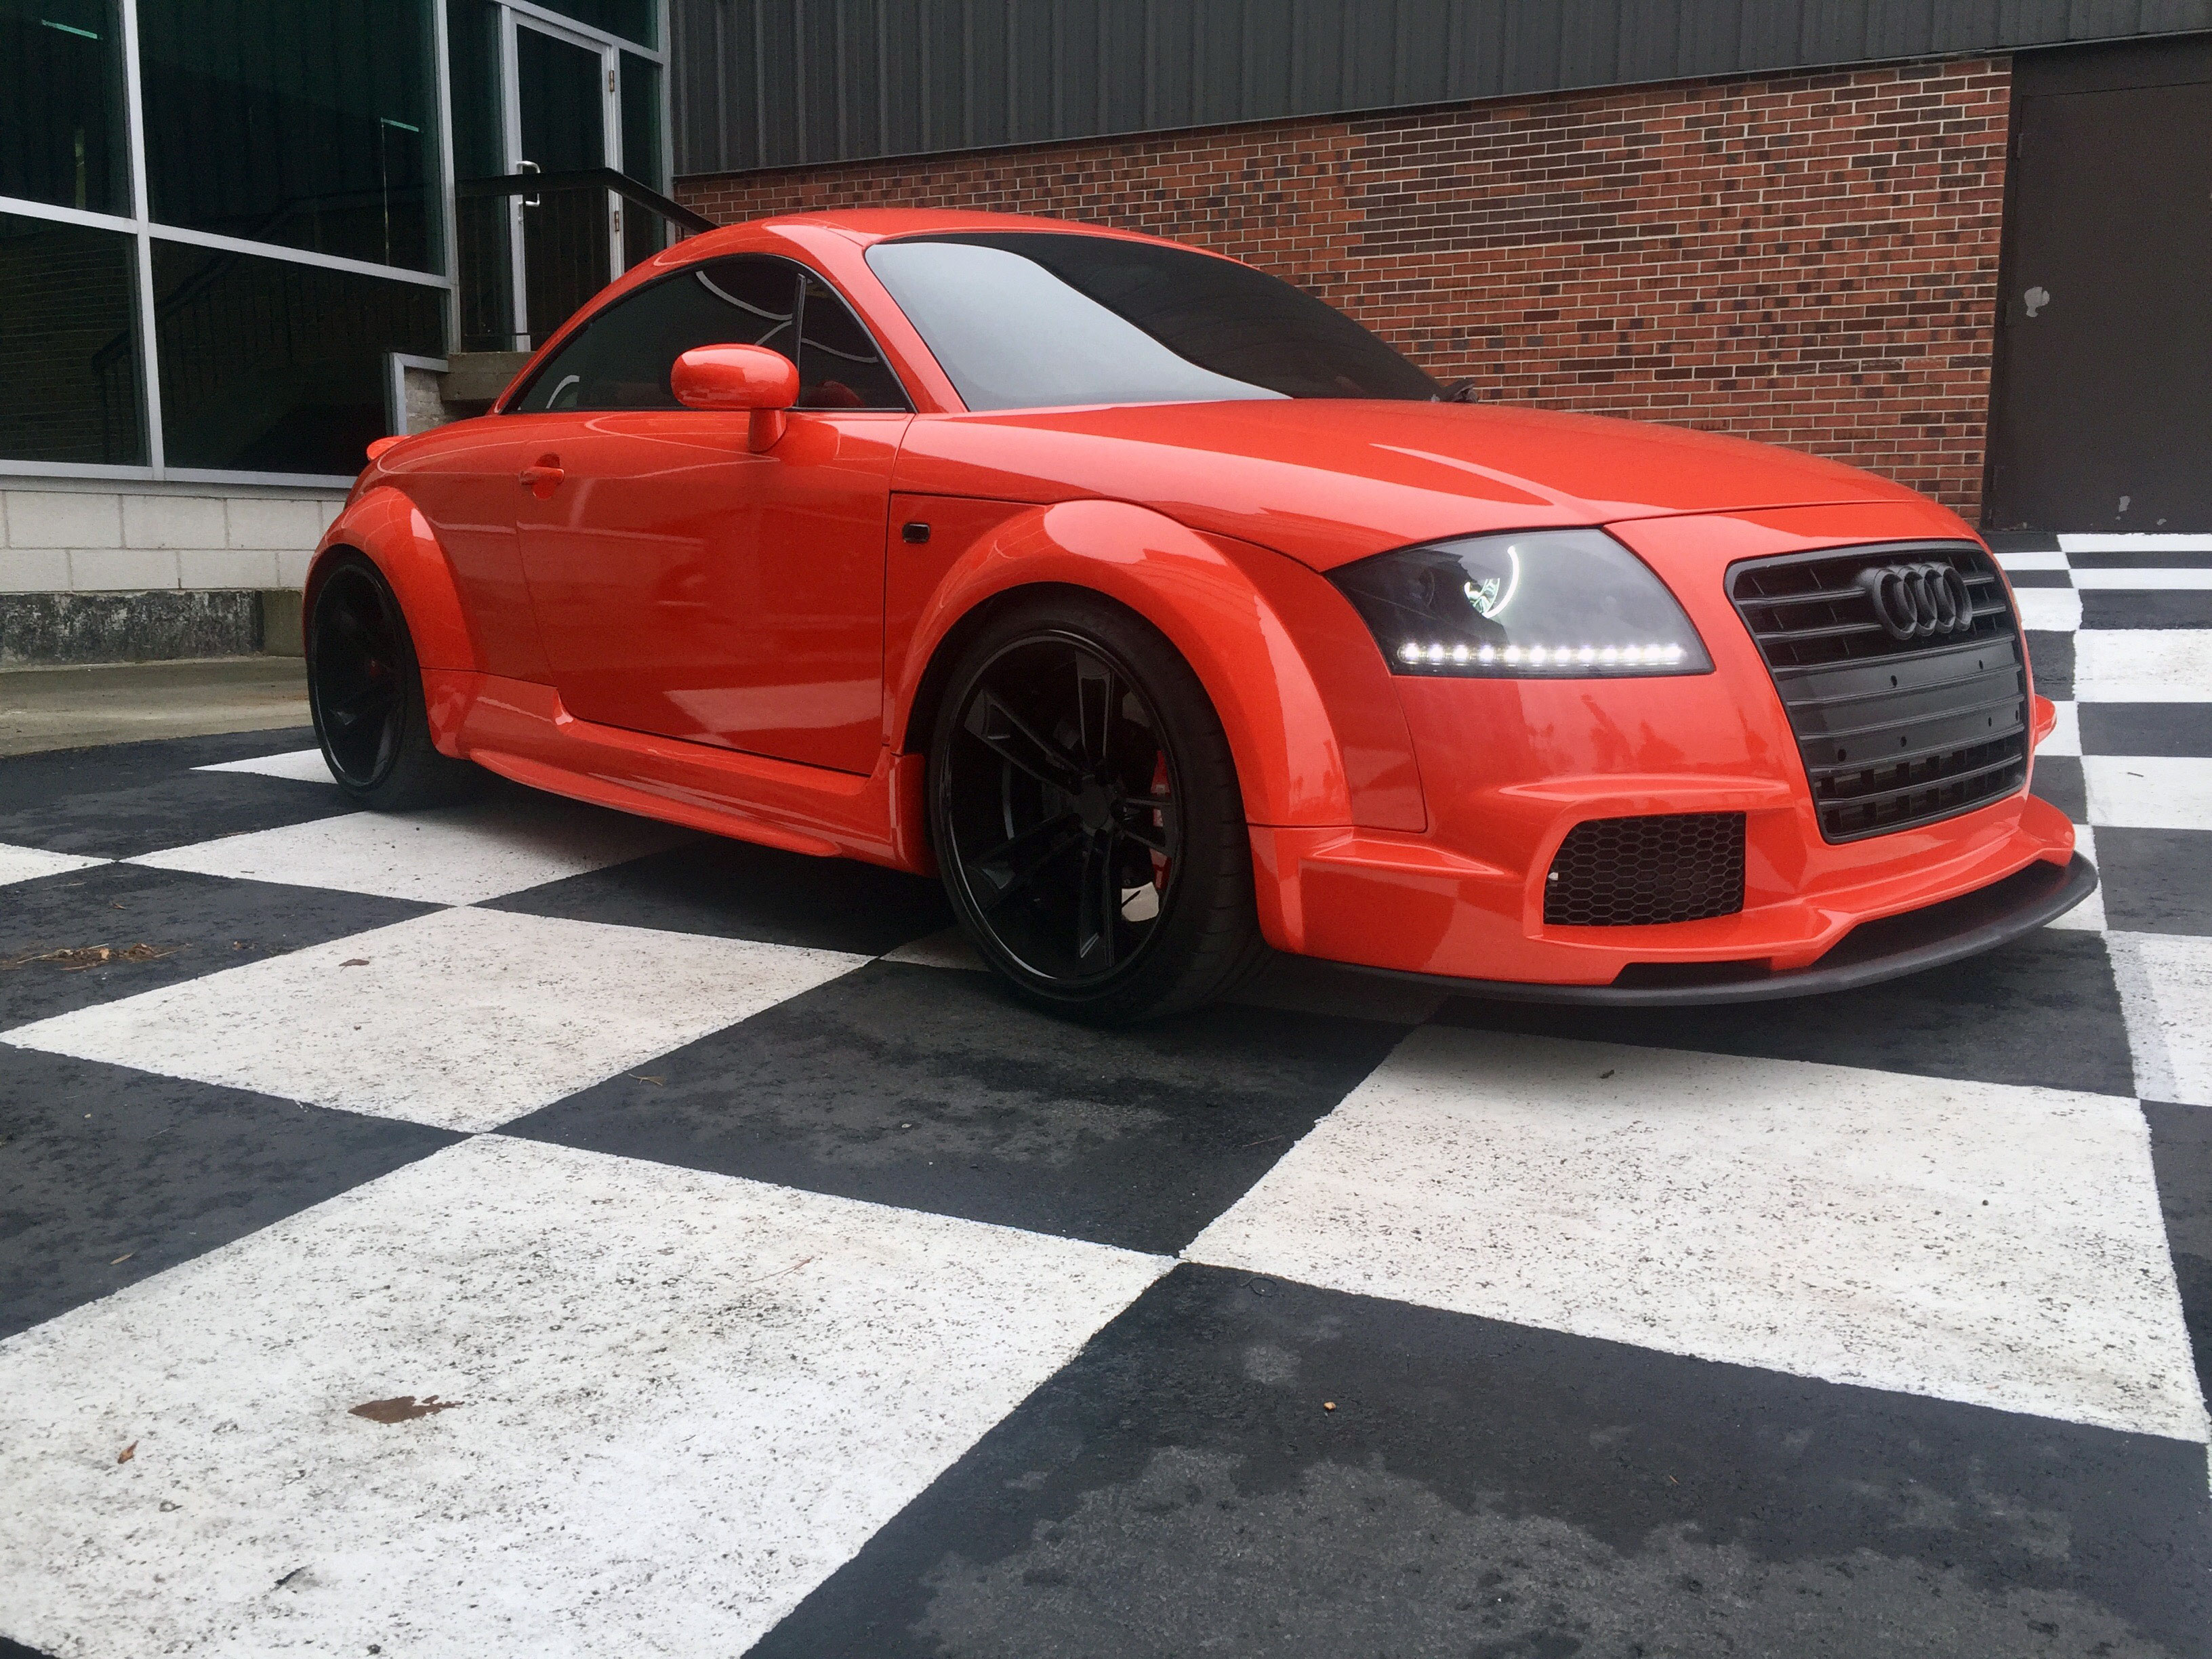 audi tt mk1 8n tuning parts accessories my audi tt. Black Bedroom Furniture Sets. Home Design Ideas